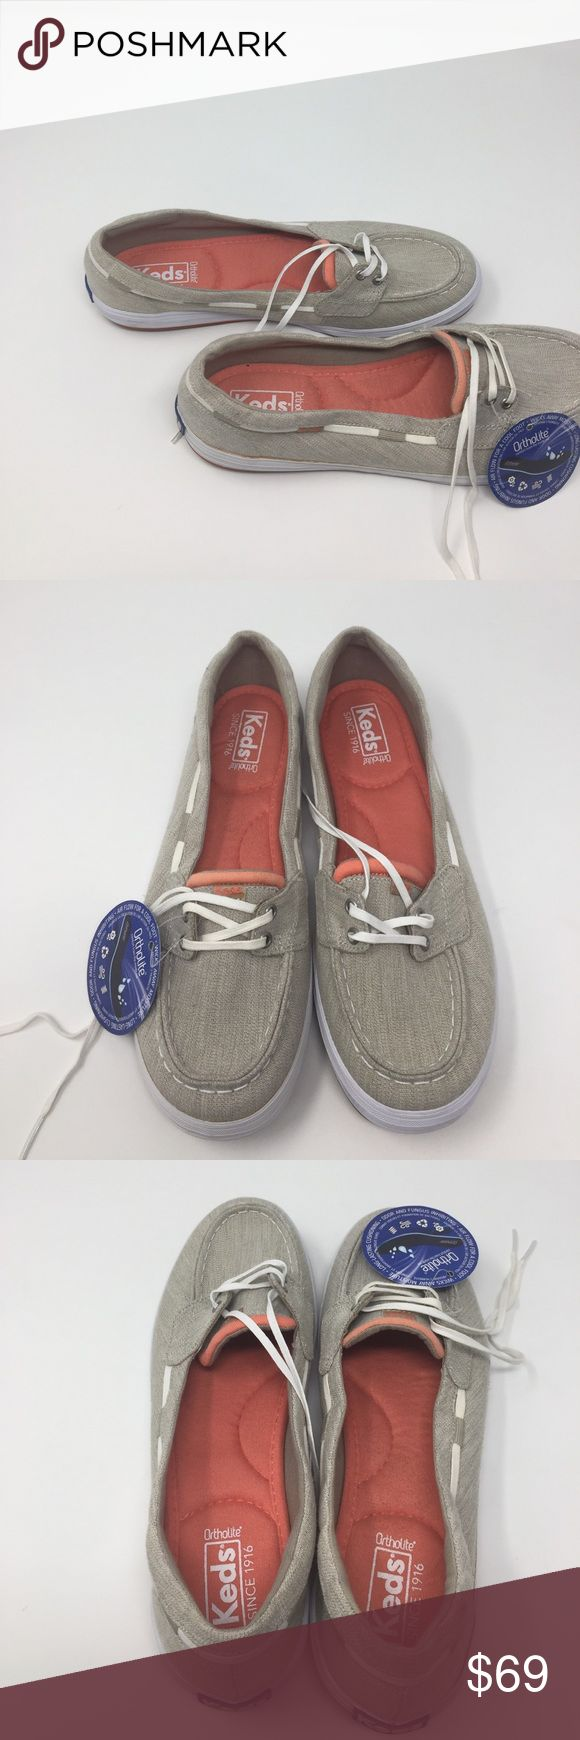 Women's keds shoe glimmer boat shoes tan 9 a2box 2 These are new without box or tags the shoe strings are off color the sides have glue mark showing too still in good condition women keds shoe glimmer boat shoes tan size 9 keds Shoes Flats & Loafers